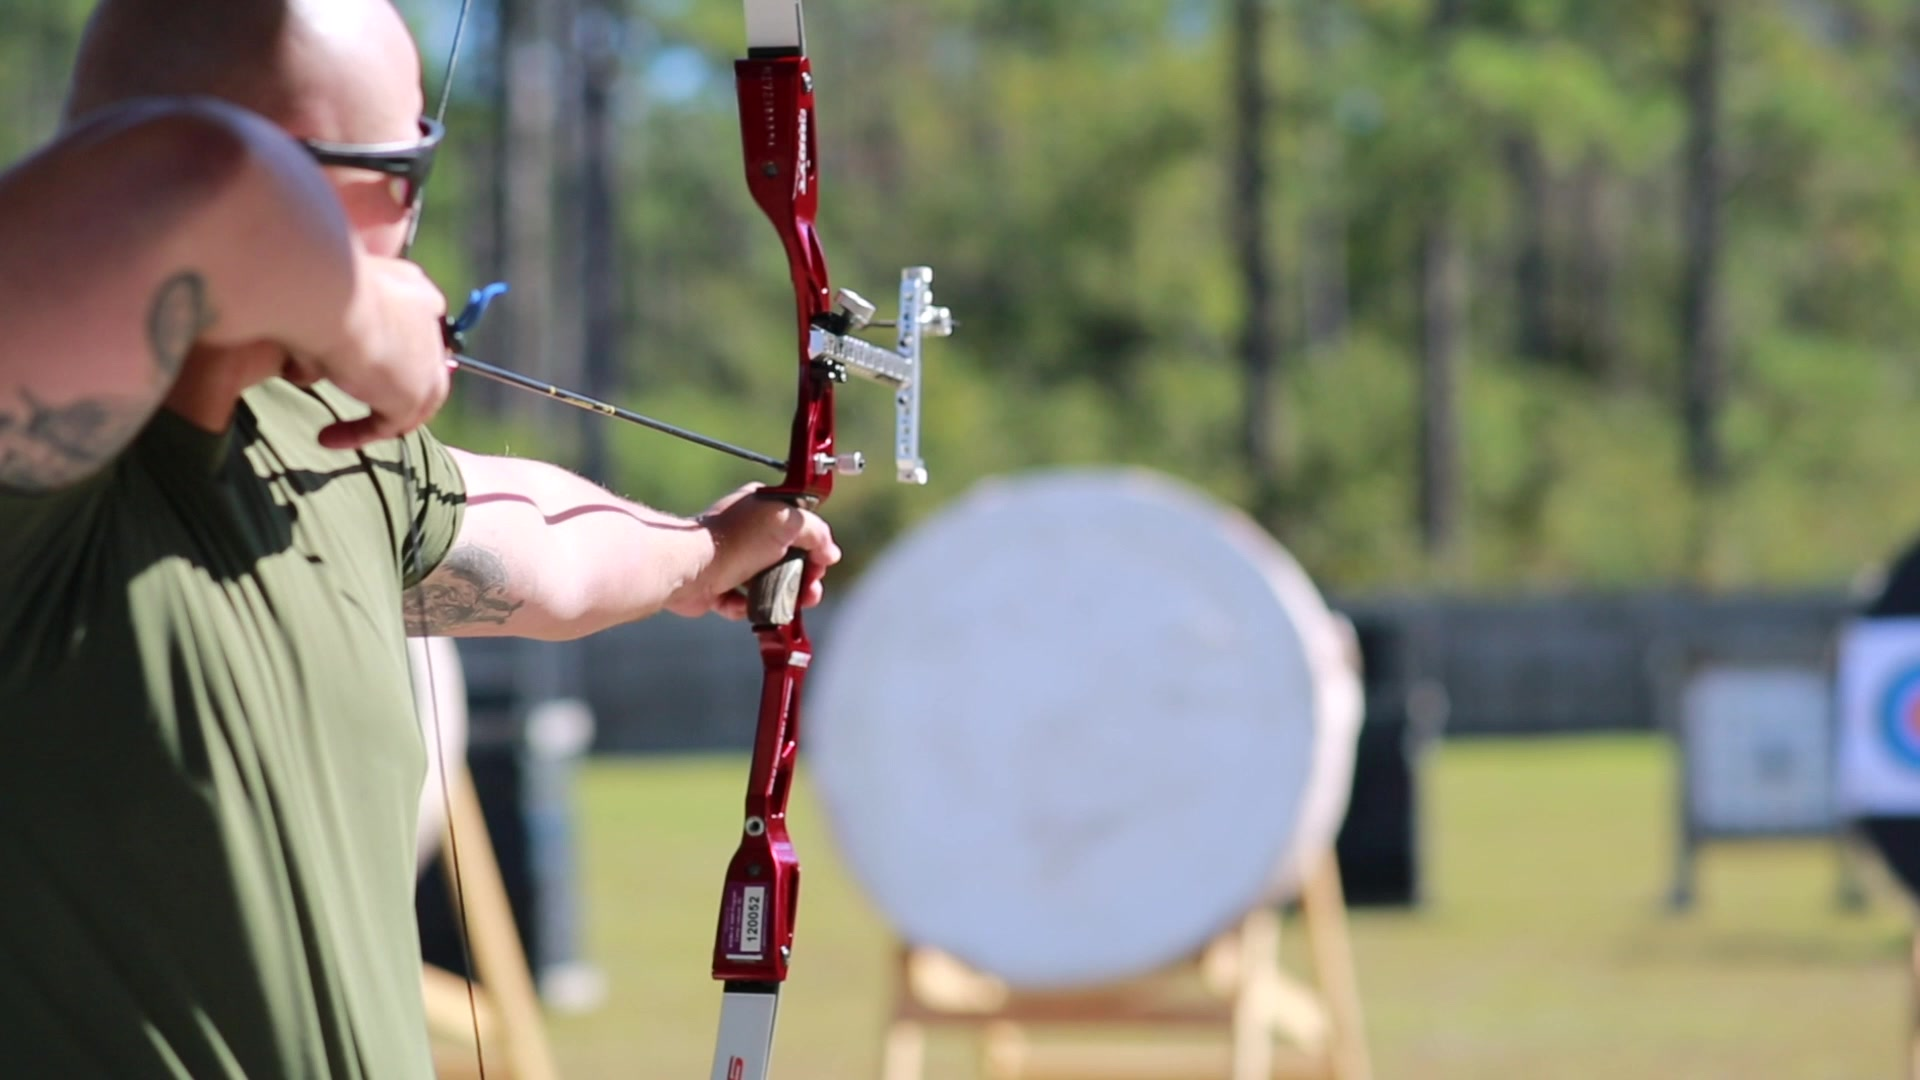 U.S. Marines with Wounded Warrior Battalion East and Soldiers with the British Royal Army shot archery on Marine Corps Base Camp Lejeune, North Carolina, Oct. 23, 2019. The purpose of the visit was to foster camaraderie amongst international military service members and promote the health and wellness of the Marines and British service members recovering from physical and mental health challenges. (U.S. Marine Corps video by Lance Cpl. Katie Campbell)